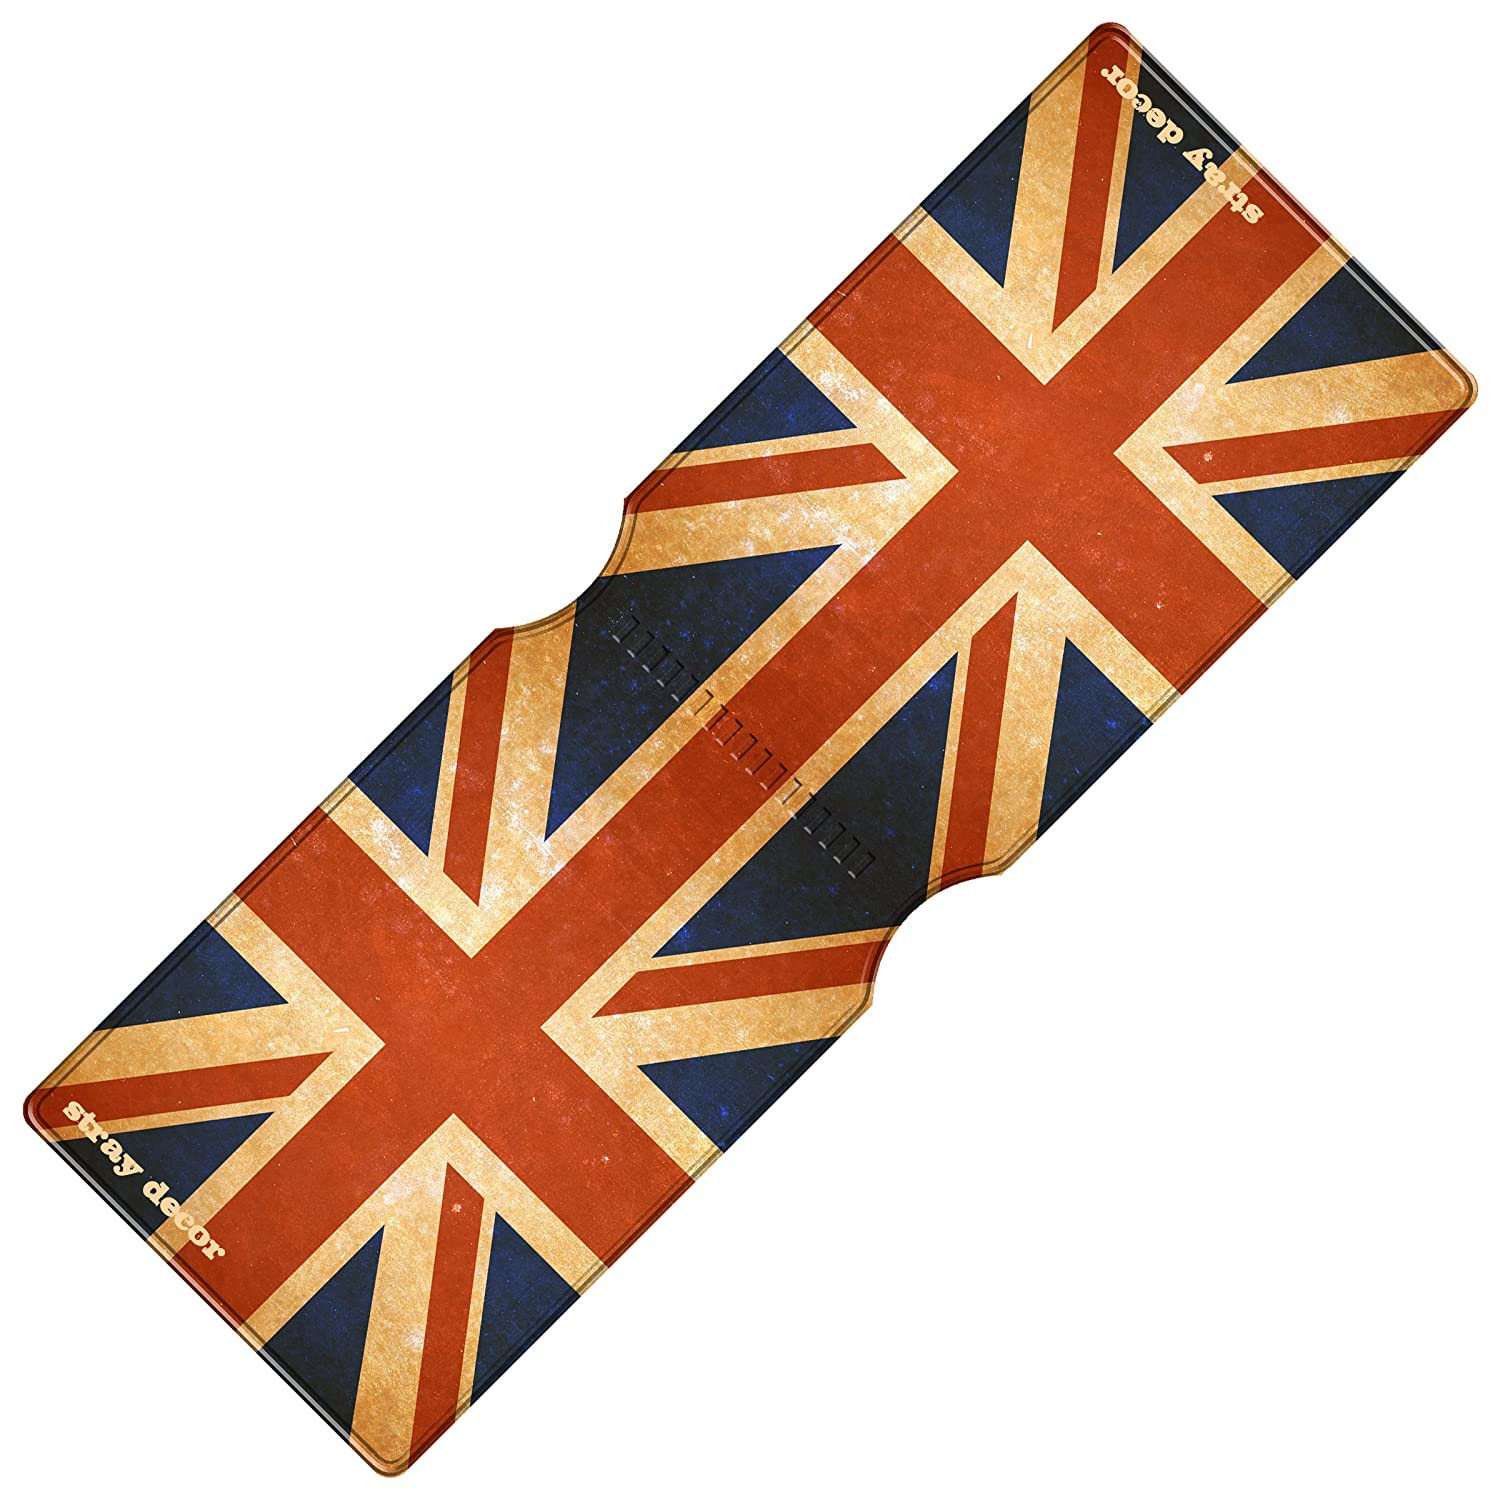 Stray Decor - Funda de abono de transporte multicolor Artistic Union Jack talla única: Amazon.es: Equipaje